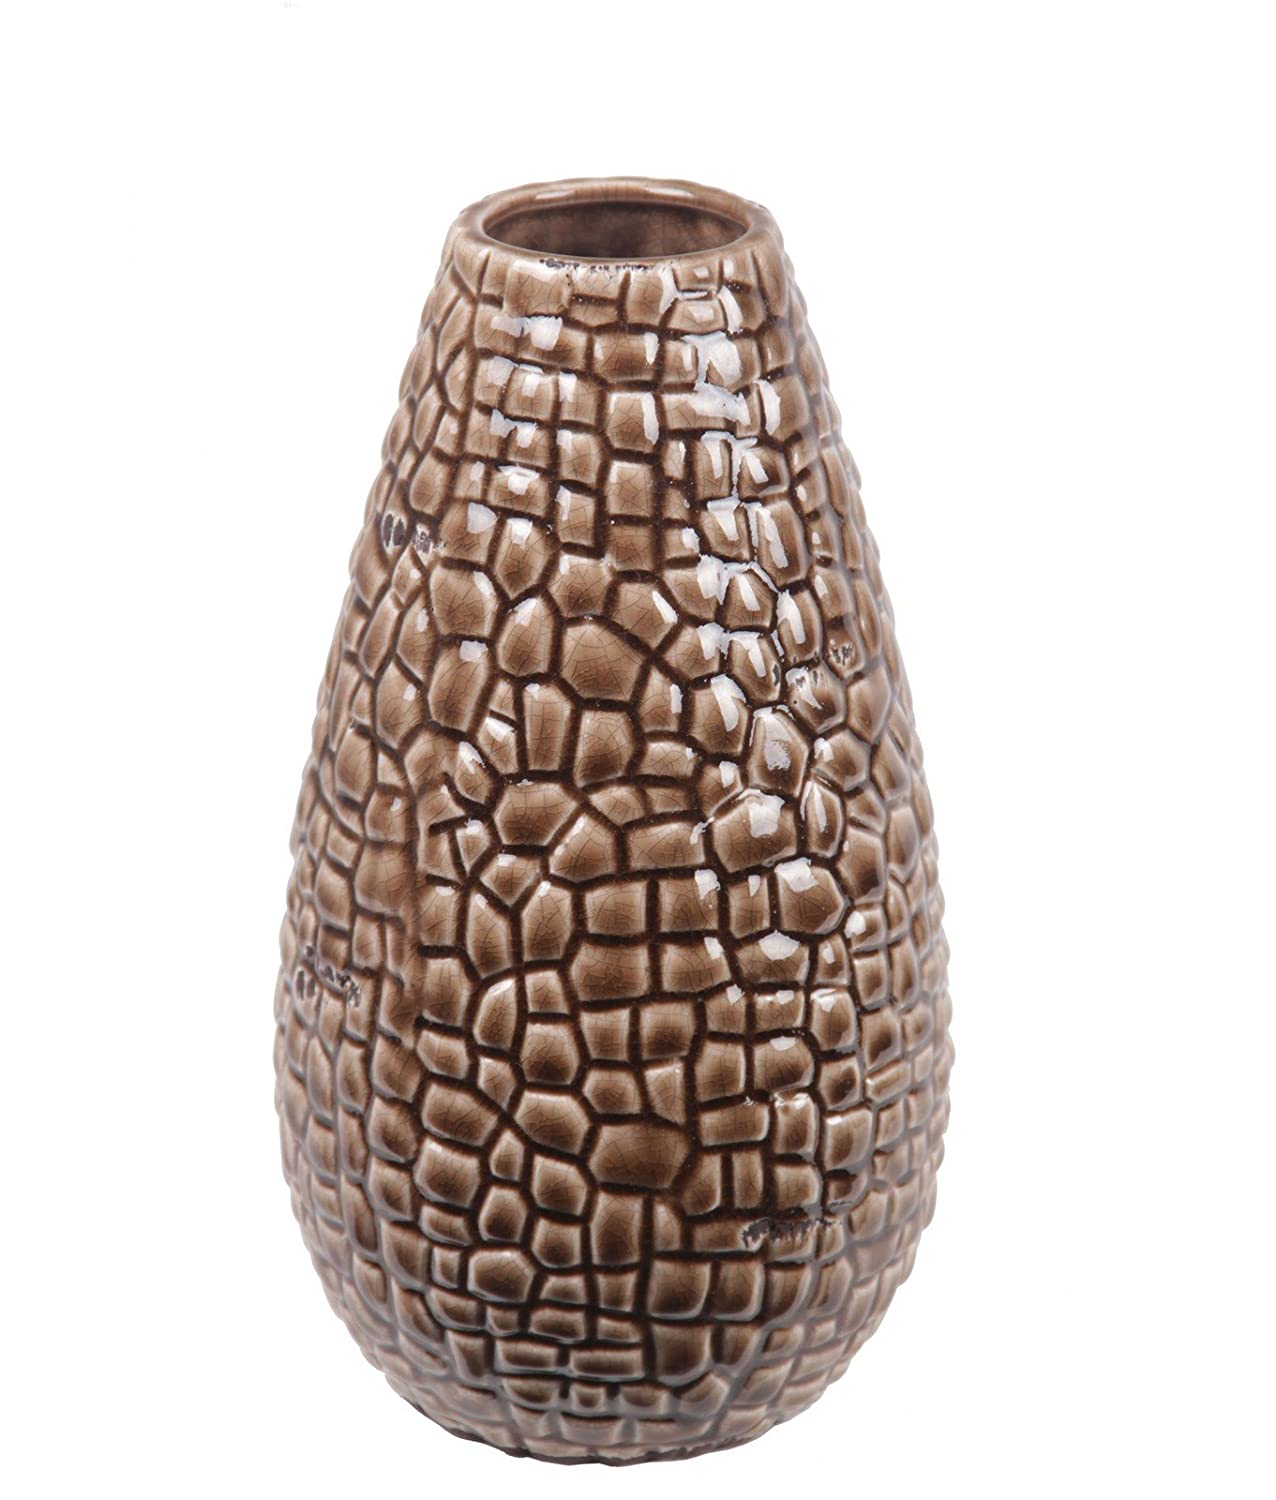 Privilege International 84035 Ceramic Vase